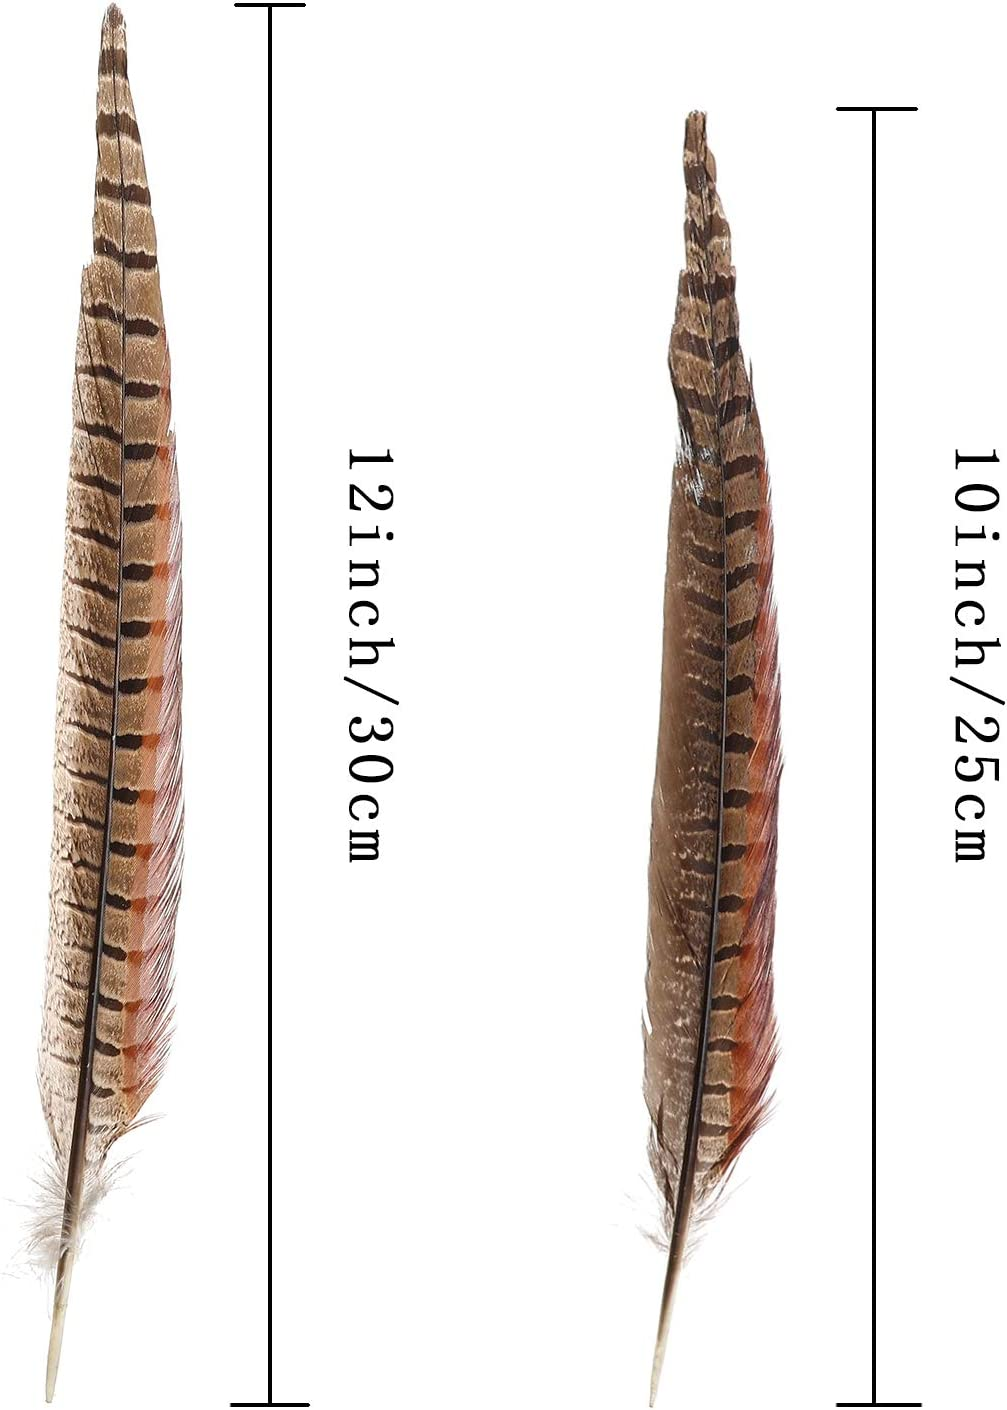 Group of twenty 7 to 10 inch pheasant feathers